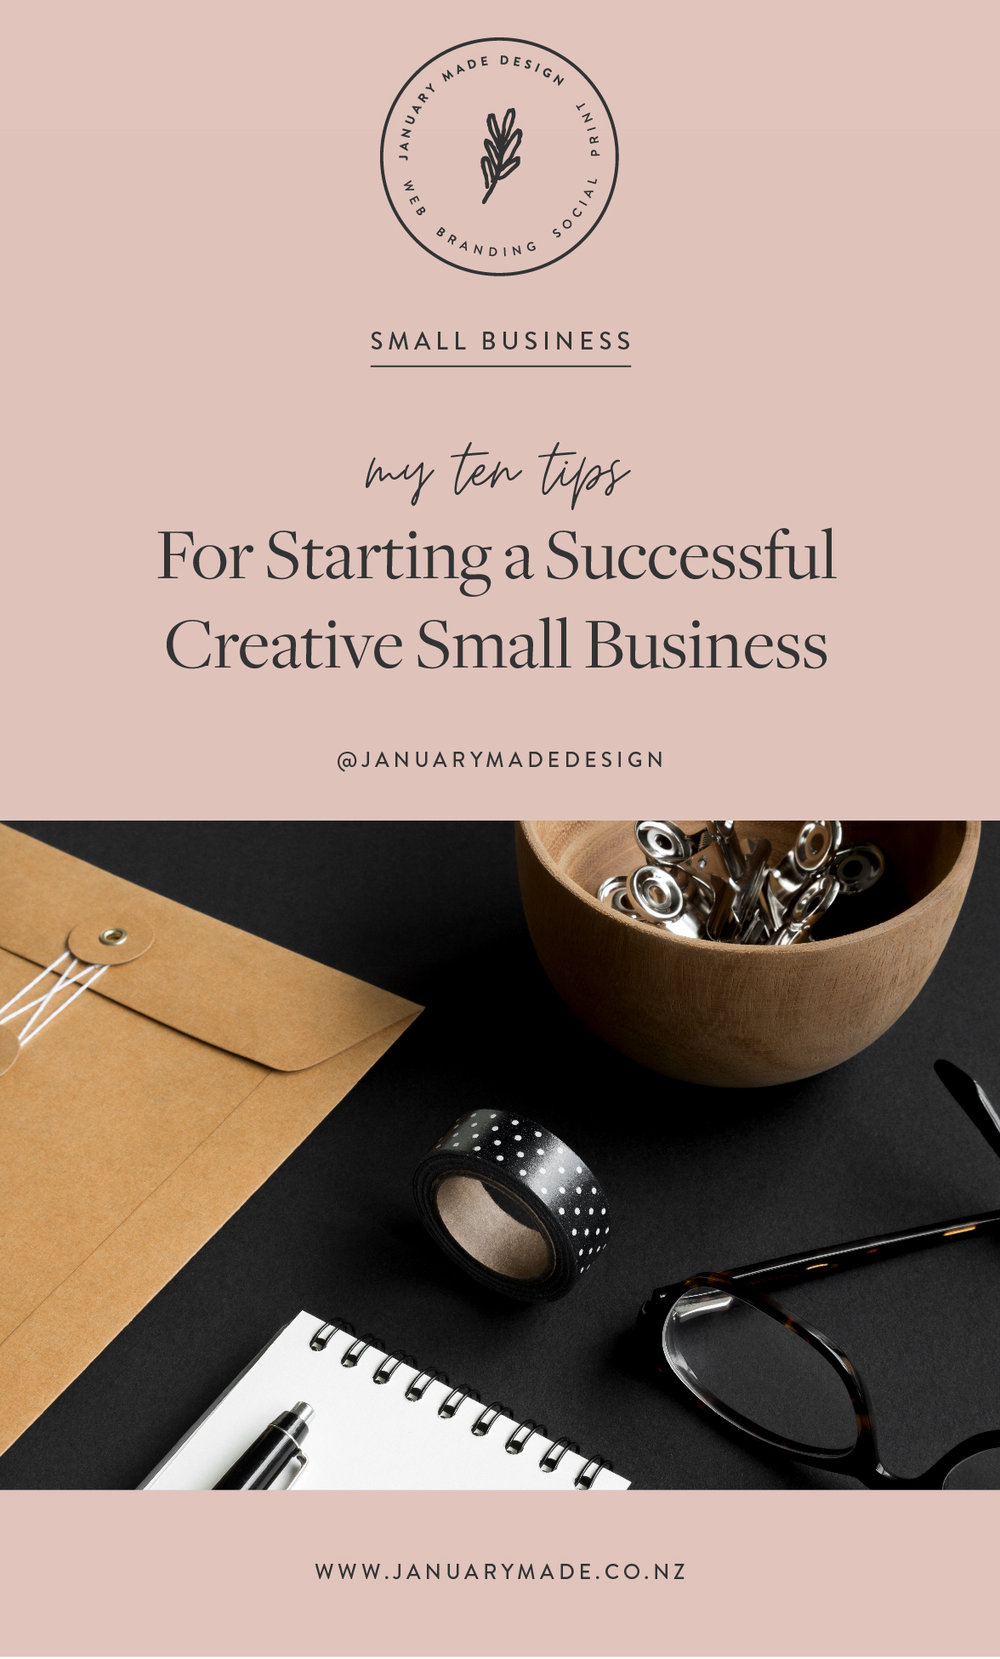 Starting a Small Business - January Made Design